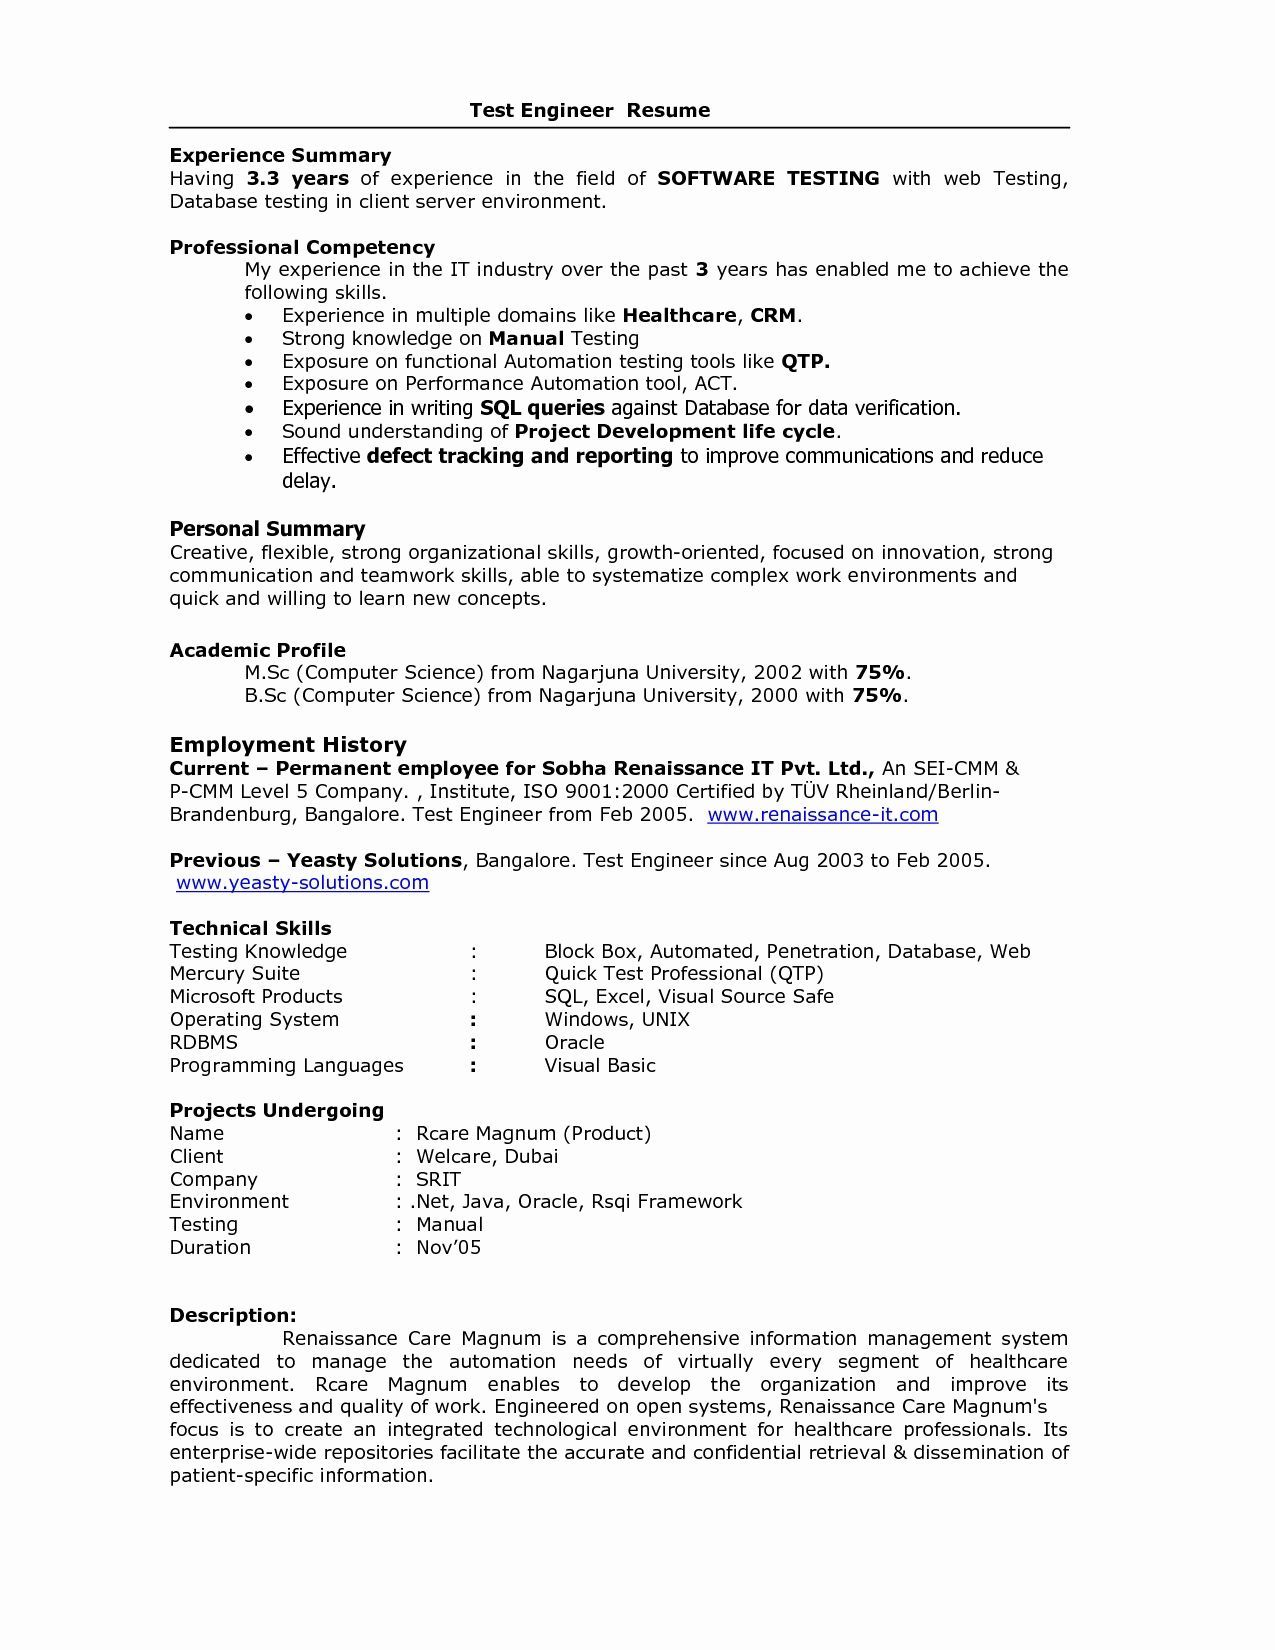 years testing experience resume format software best sample test engineer web services Resume Software Test Engineer Resume